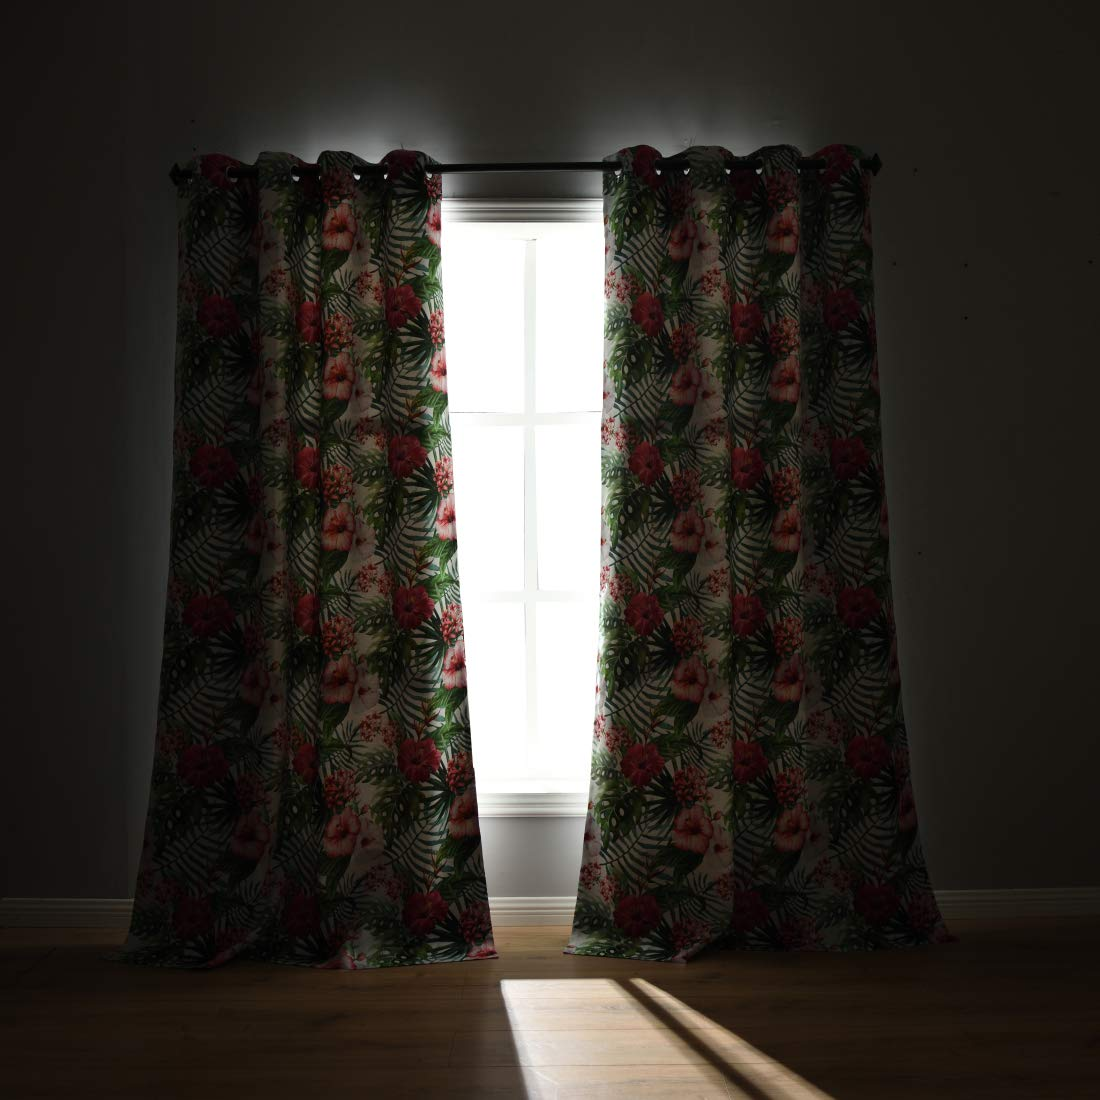 W52 x L84 inch Green Curtains 2 Panels with 2 Tiebacks QQHOME Fresh Country Style Printed Design Room Darkening Blackout Curtain Panels Grommet Top